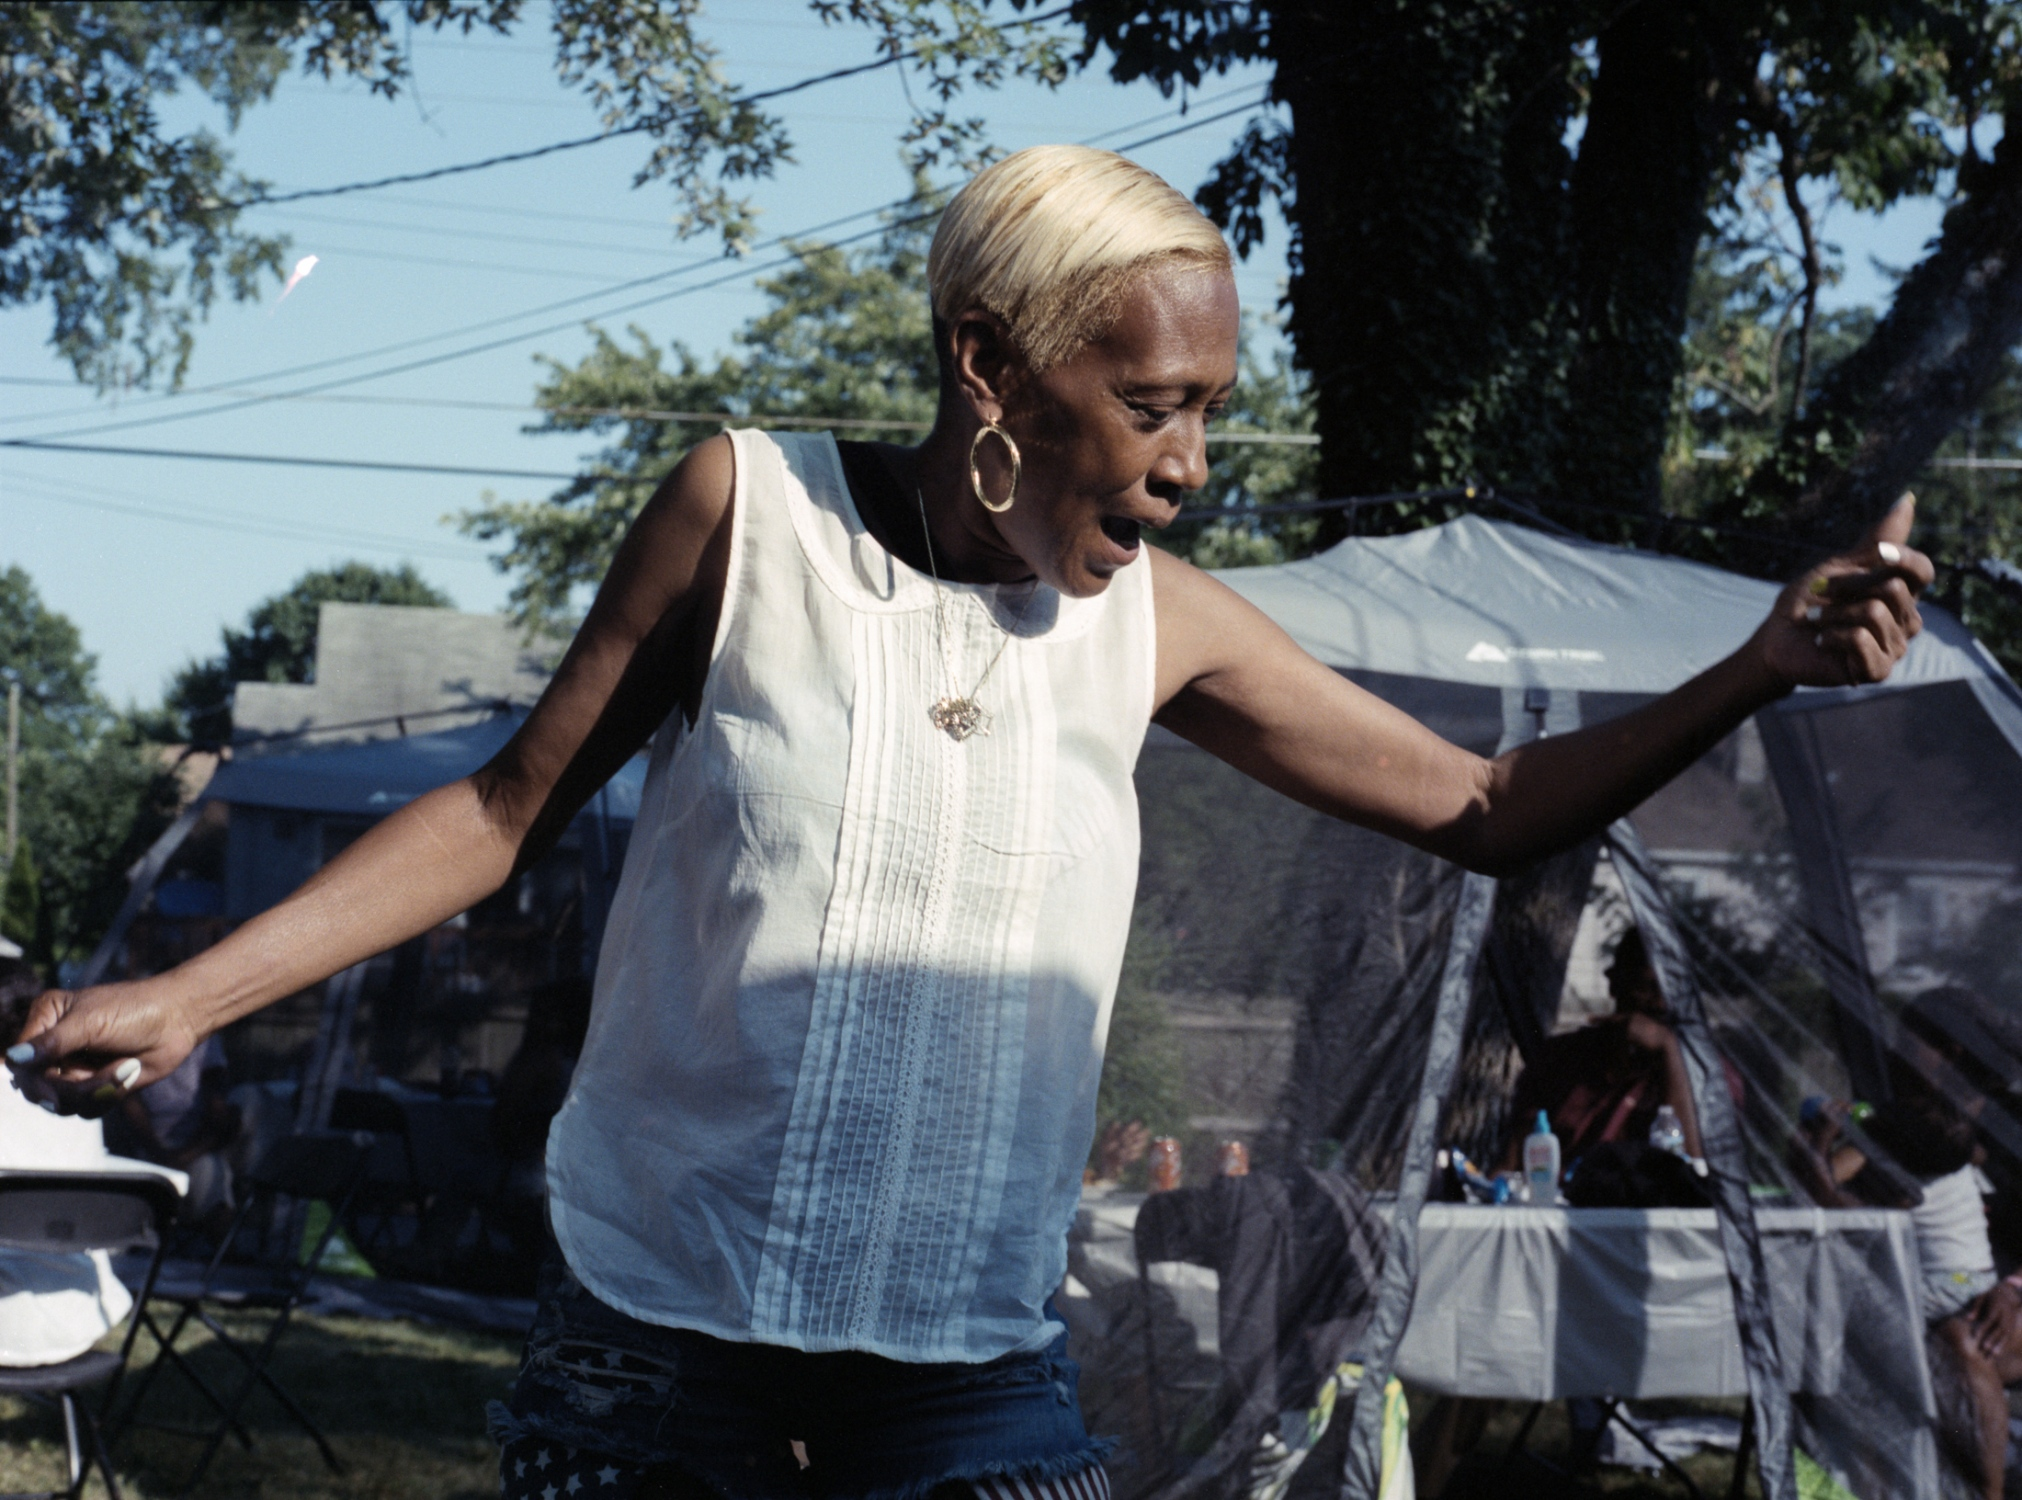 Aunt Cheryl dancing at the Family Cookout, 2018